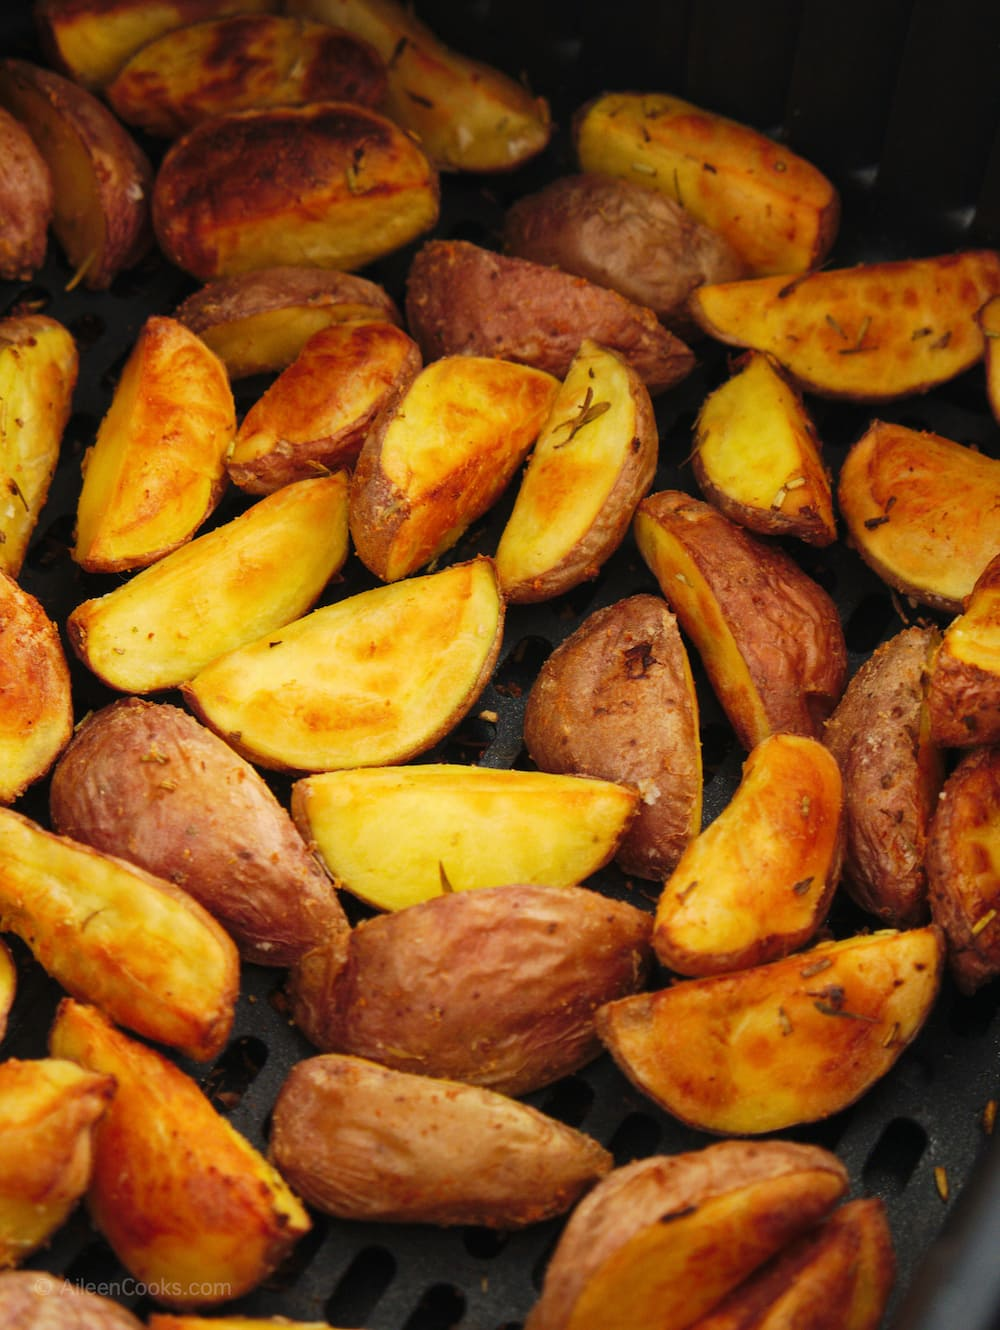 Fully cooked red potatoes in air fryer basket.